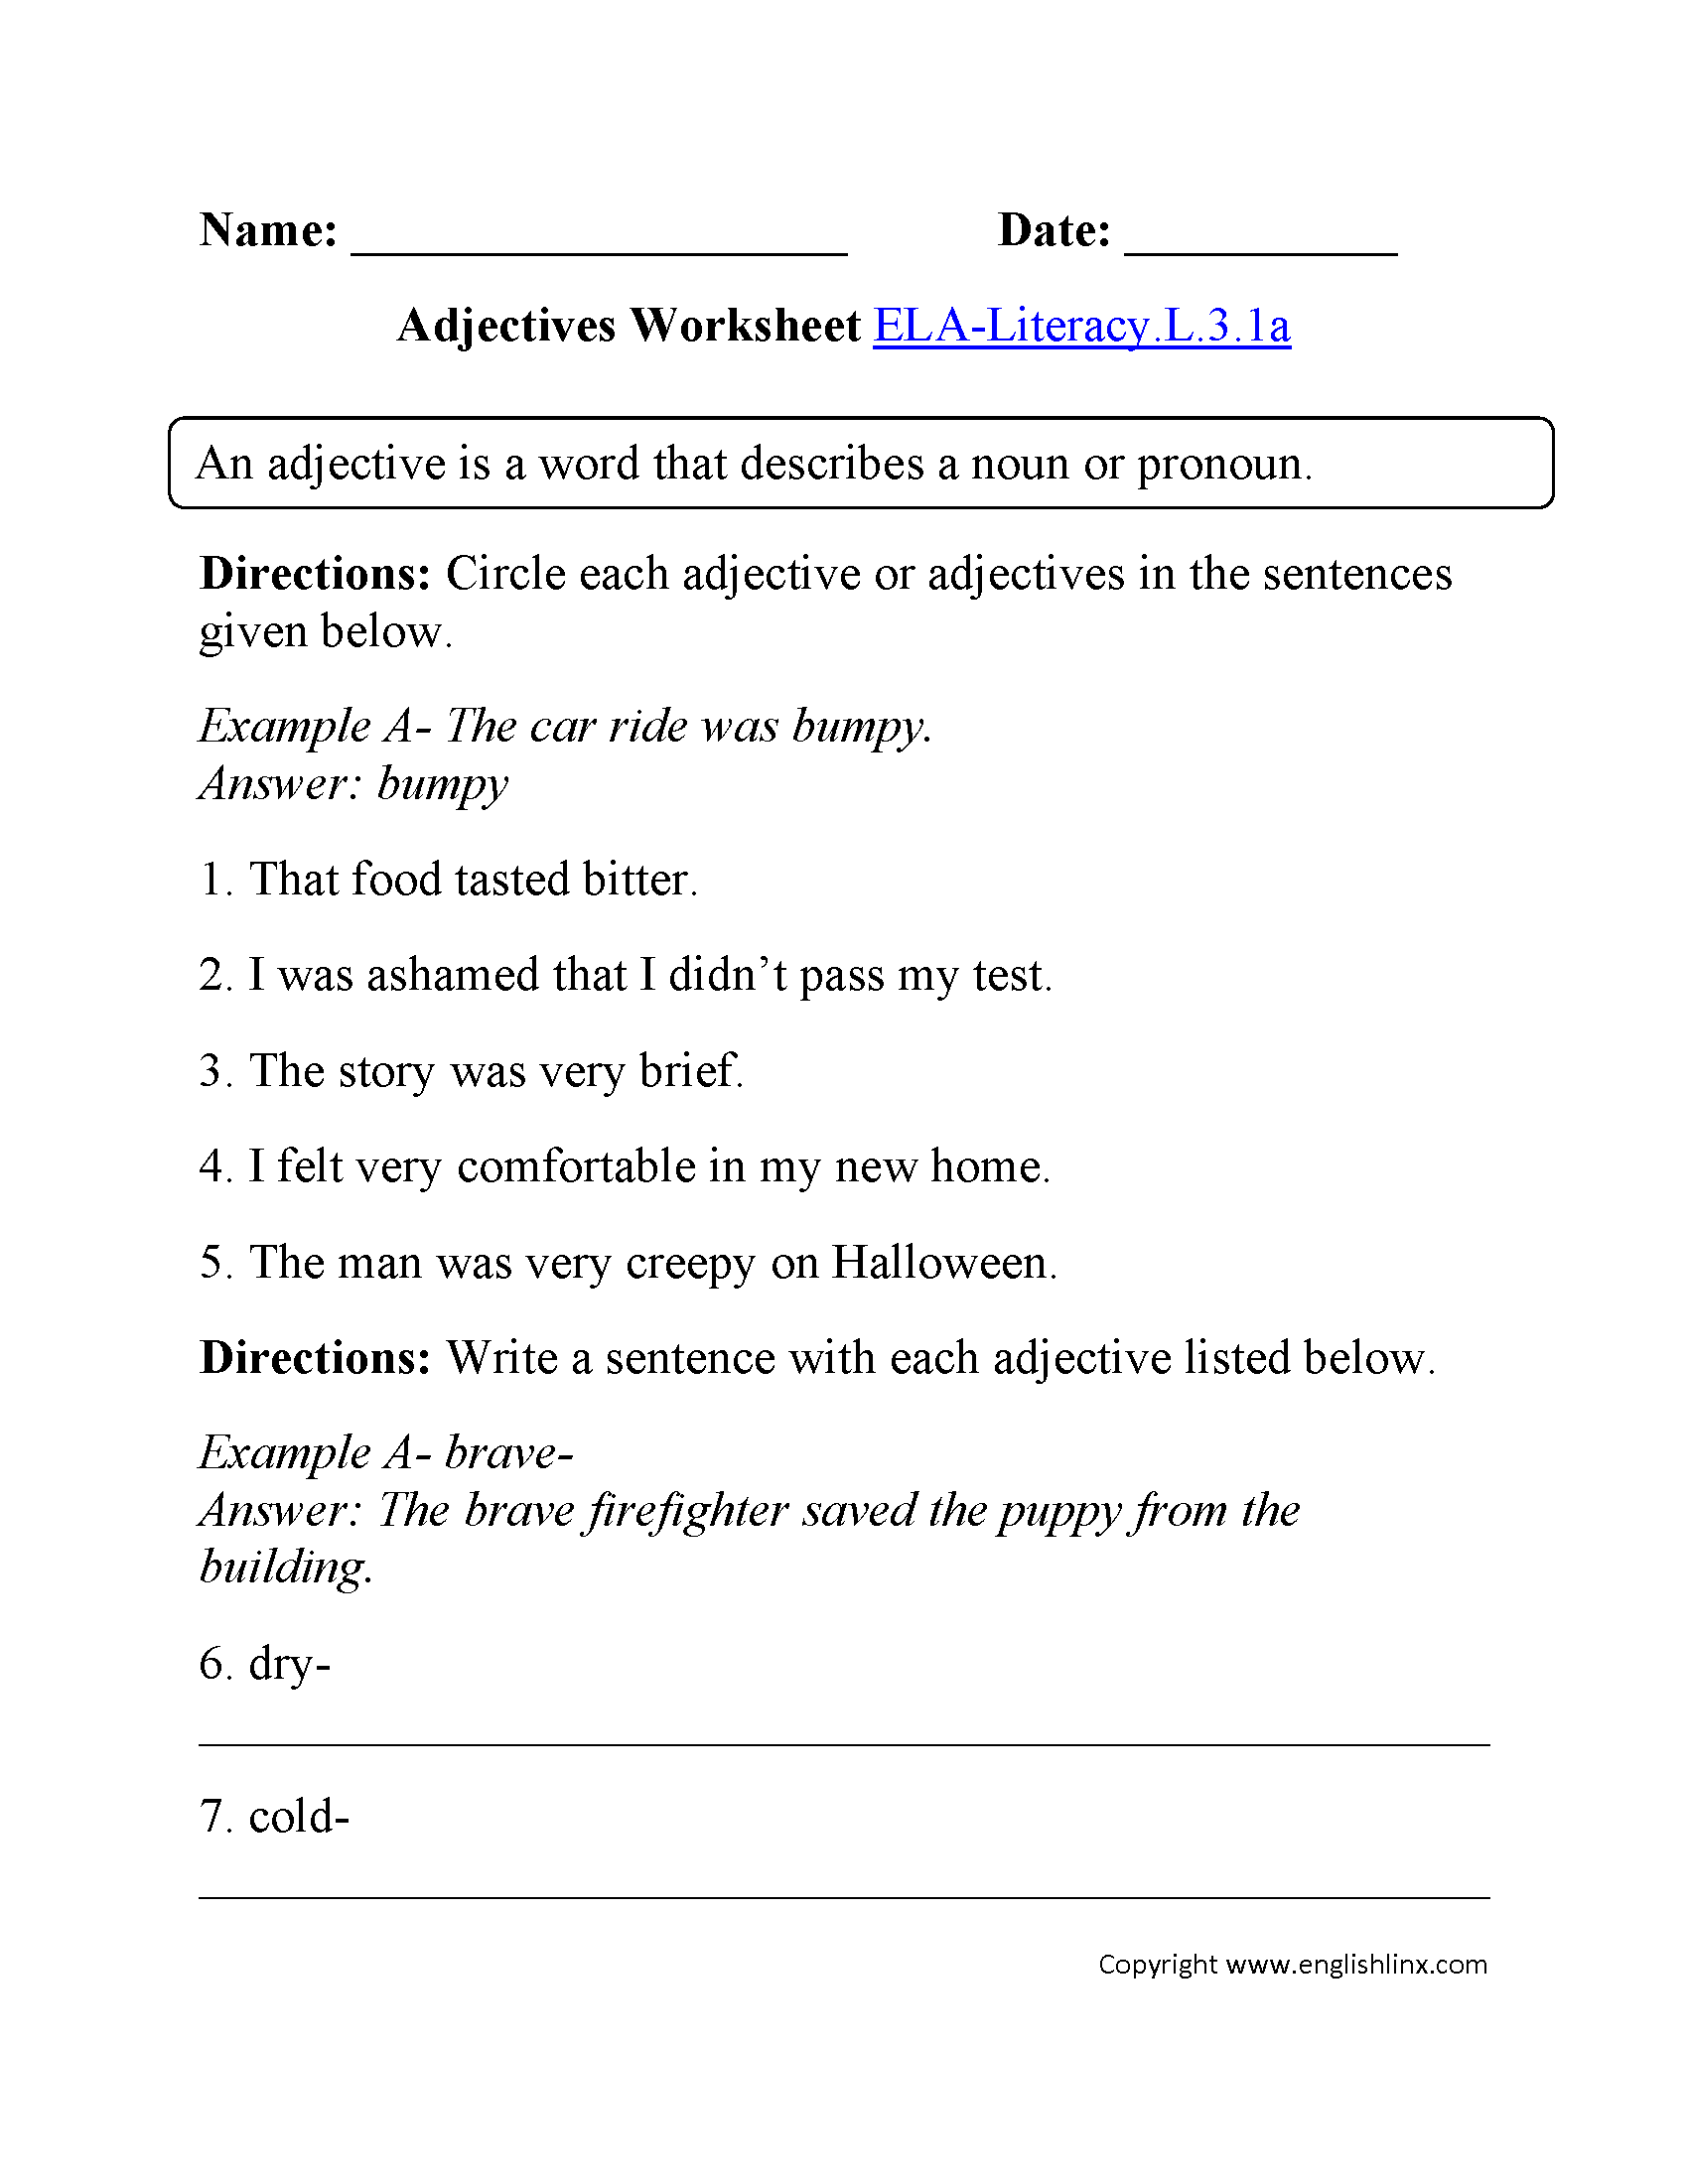 3rd grade common core language worksheets adjectives worksheet 2 ela literacy l 3 1a language worksheet